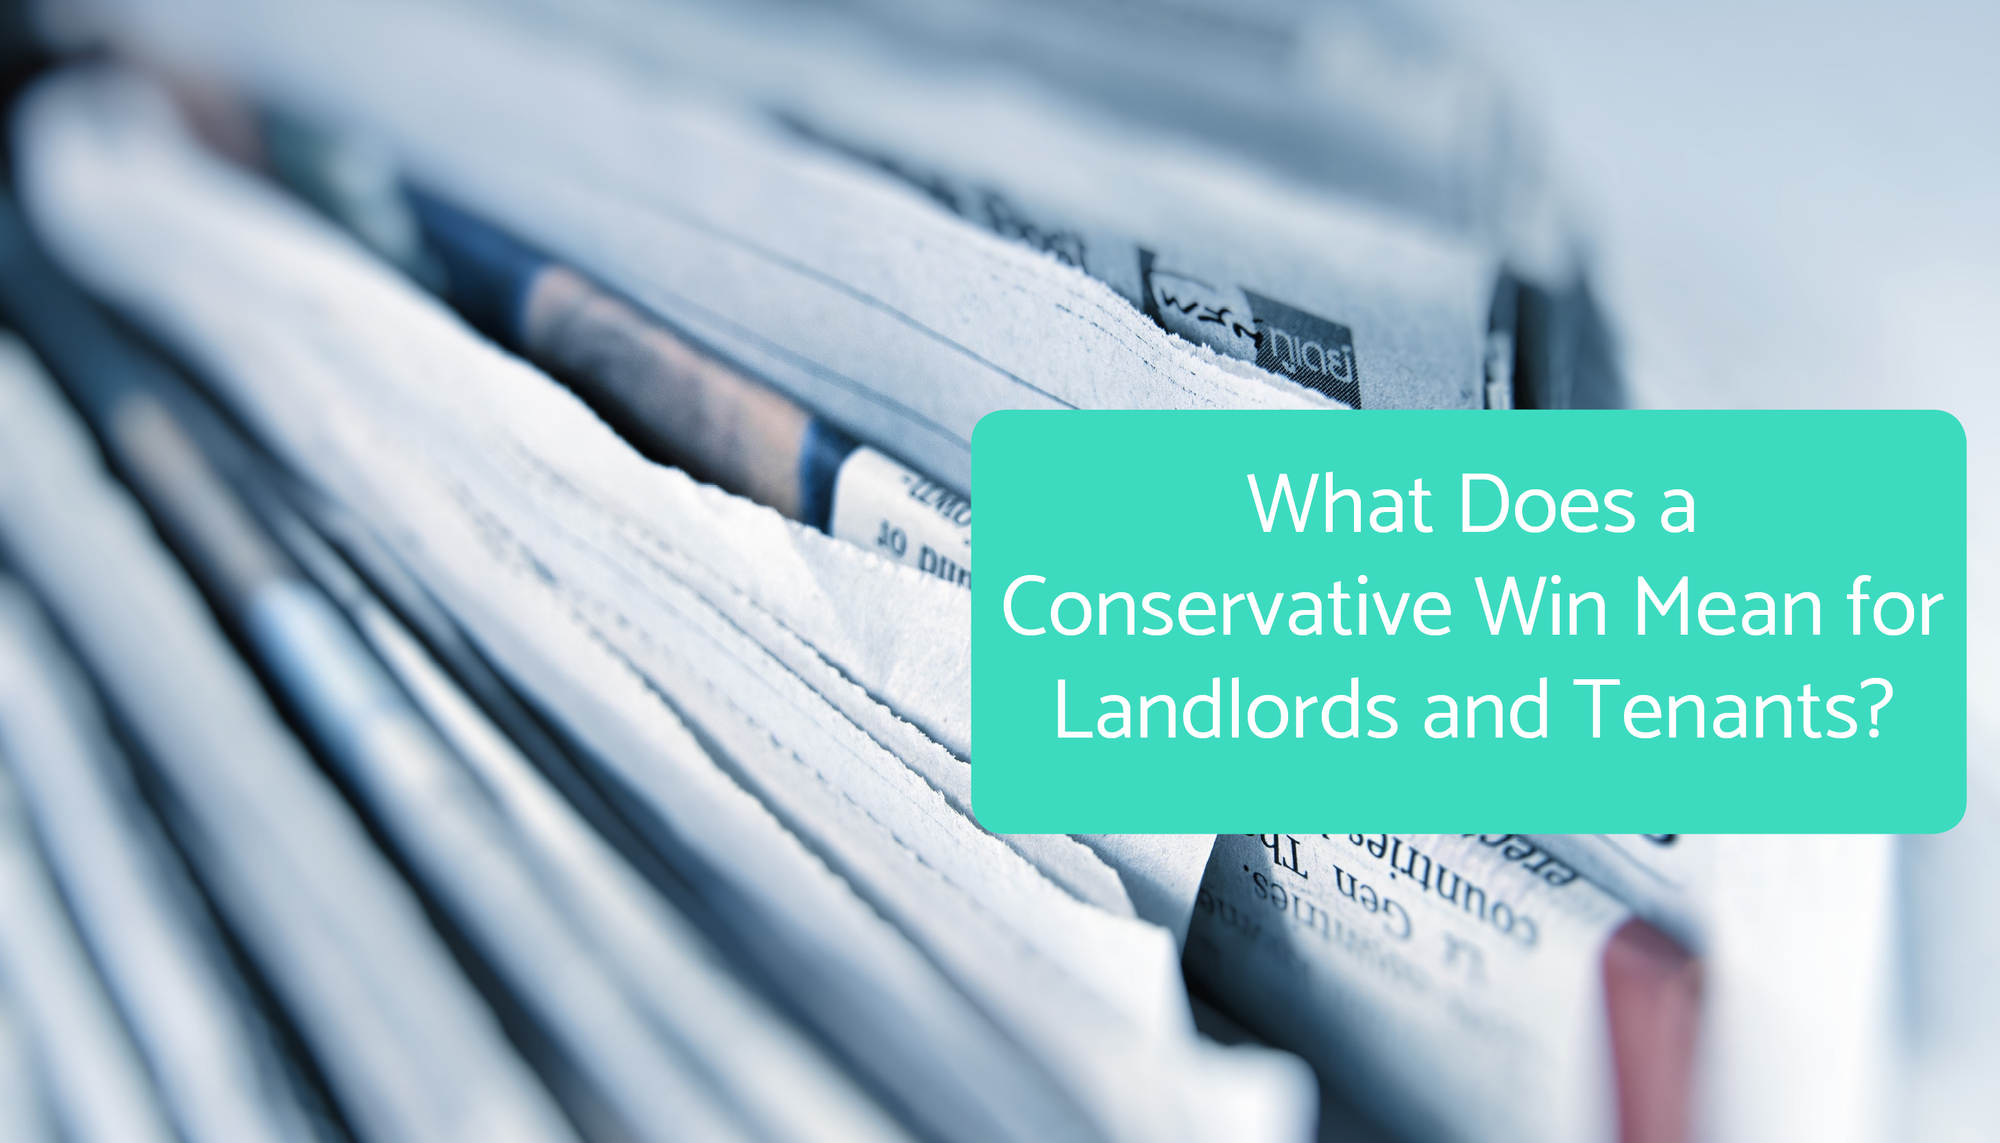 What Does a Conservative Win Mean for Landlords and Tenants?